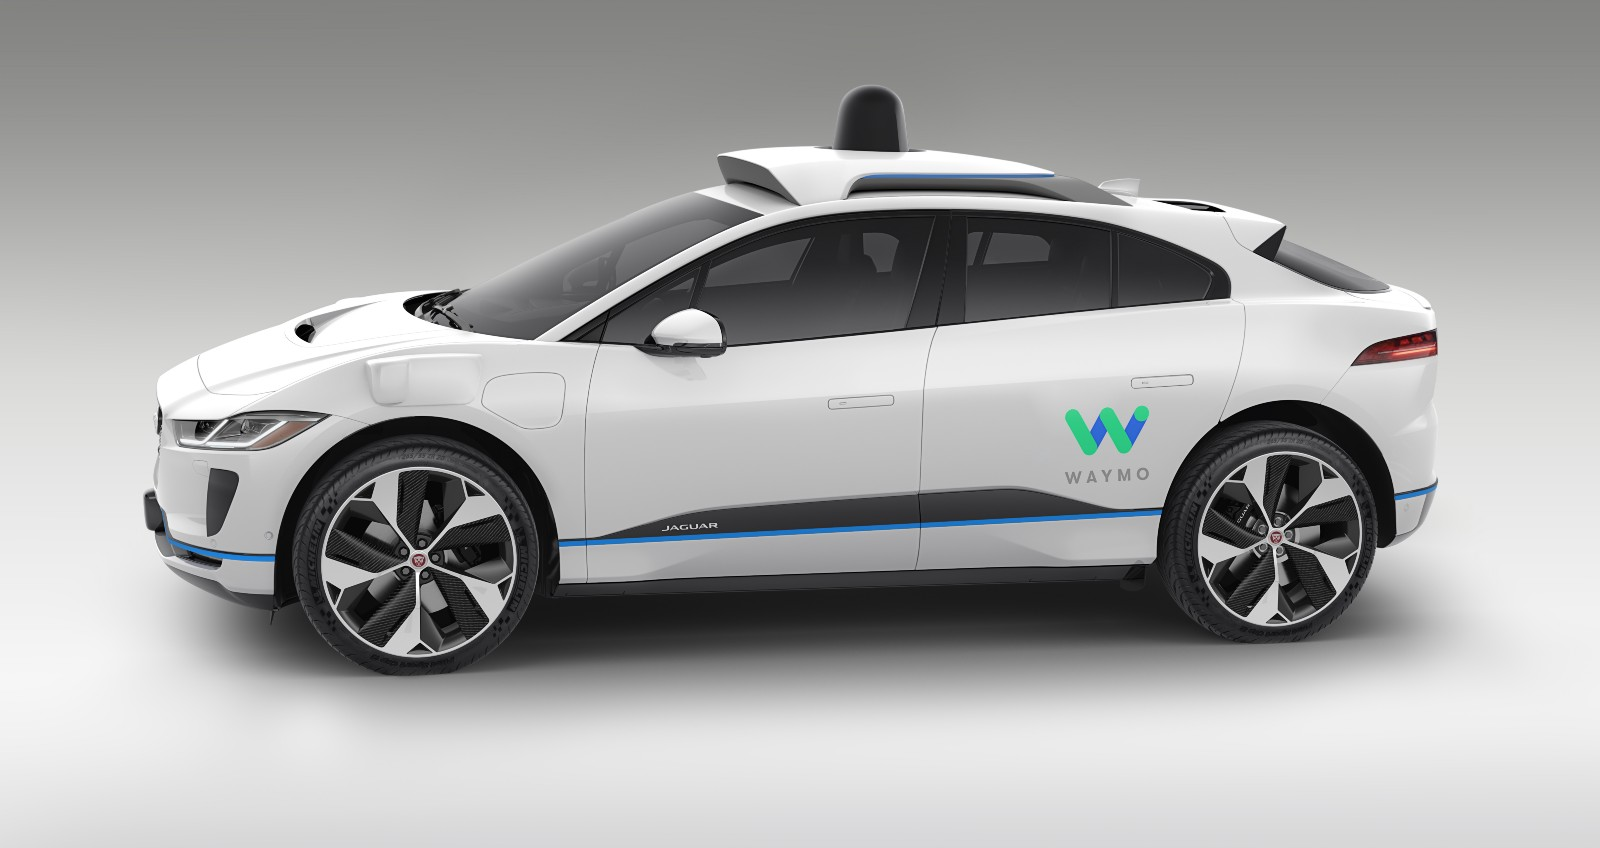 Jaguars to power Waymo's robotic ride-hailing service